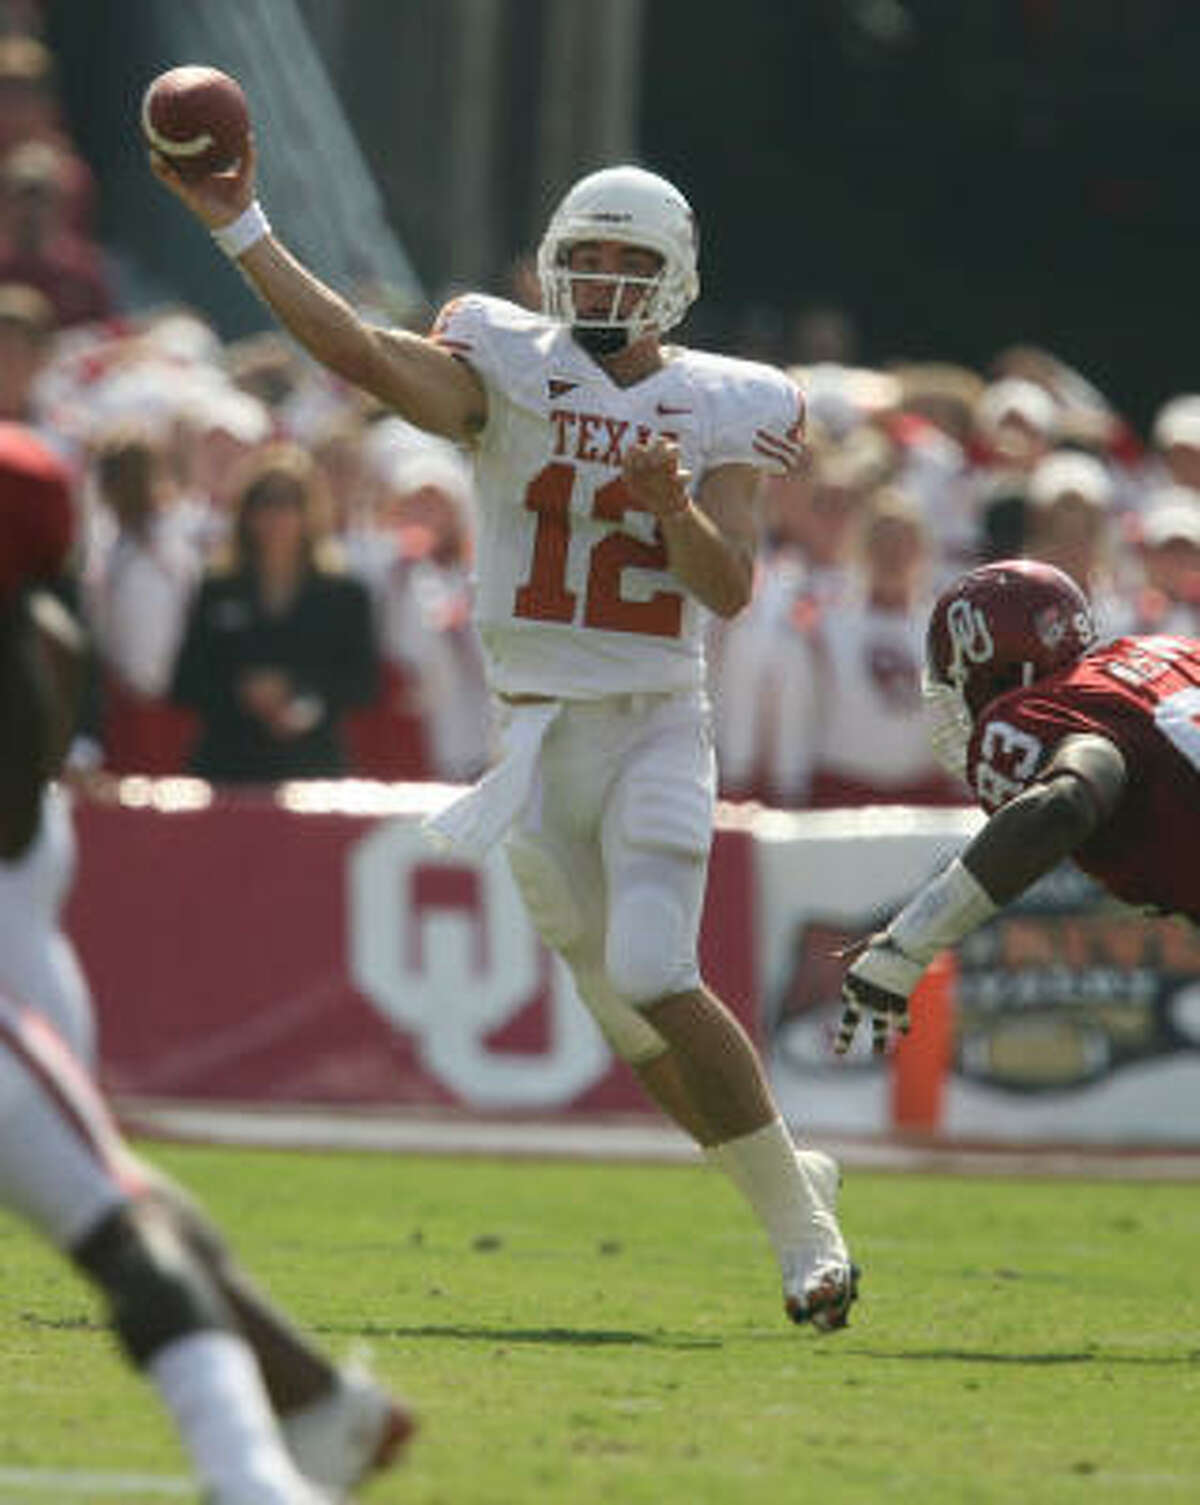 Saturday was a signal that Texas is better than anyone thought and that Colt McCoy might be every bit as capable of doing what Vince Young did in 2005, Richard Justice writes.